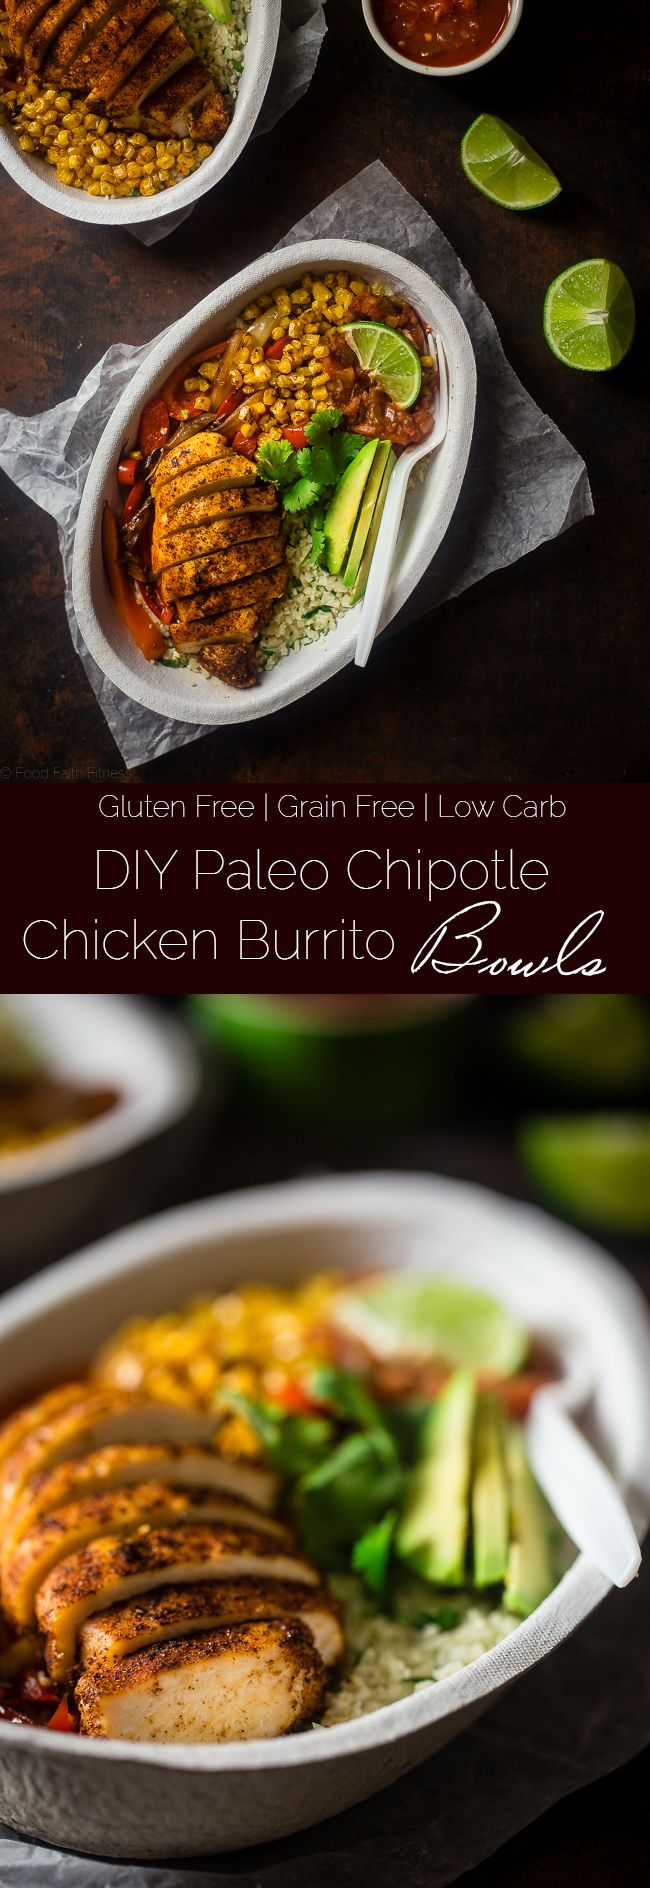 Paleo Chipotle Chicken Burrito Bowls - Make your own healthy, gluten free and paleo-friendly Chipotle Burrito Bowl at home with this quick and easy, 30 minute recipe! It's perfect for busy weeknights and under 450 calories and 8 SmartPoints | Foodfaithfitness.com | @FoodFaithFit